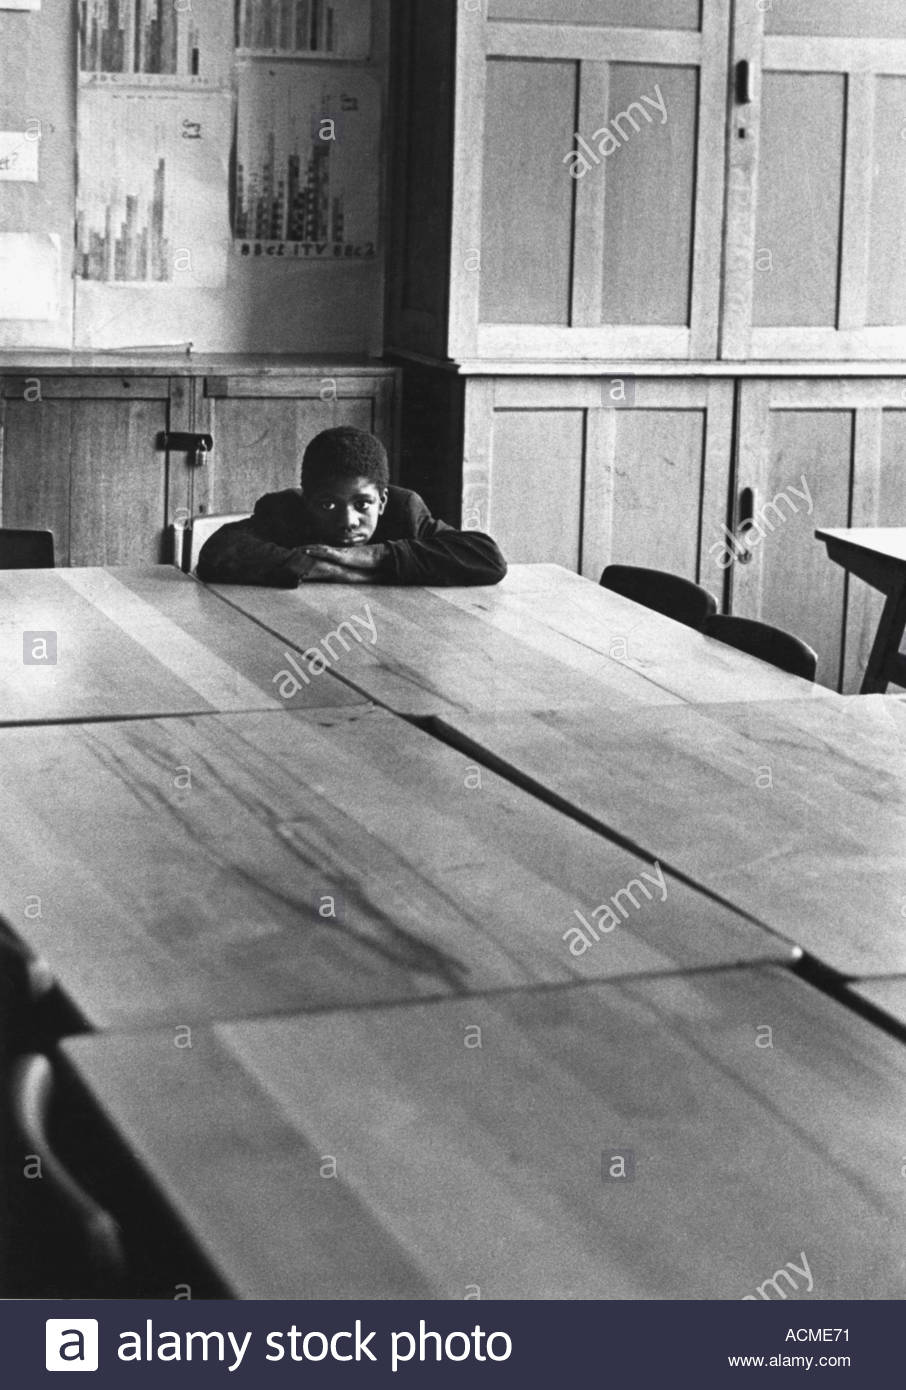 Solitary boy in secondary school classroom - Stock Image